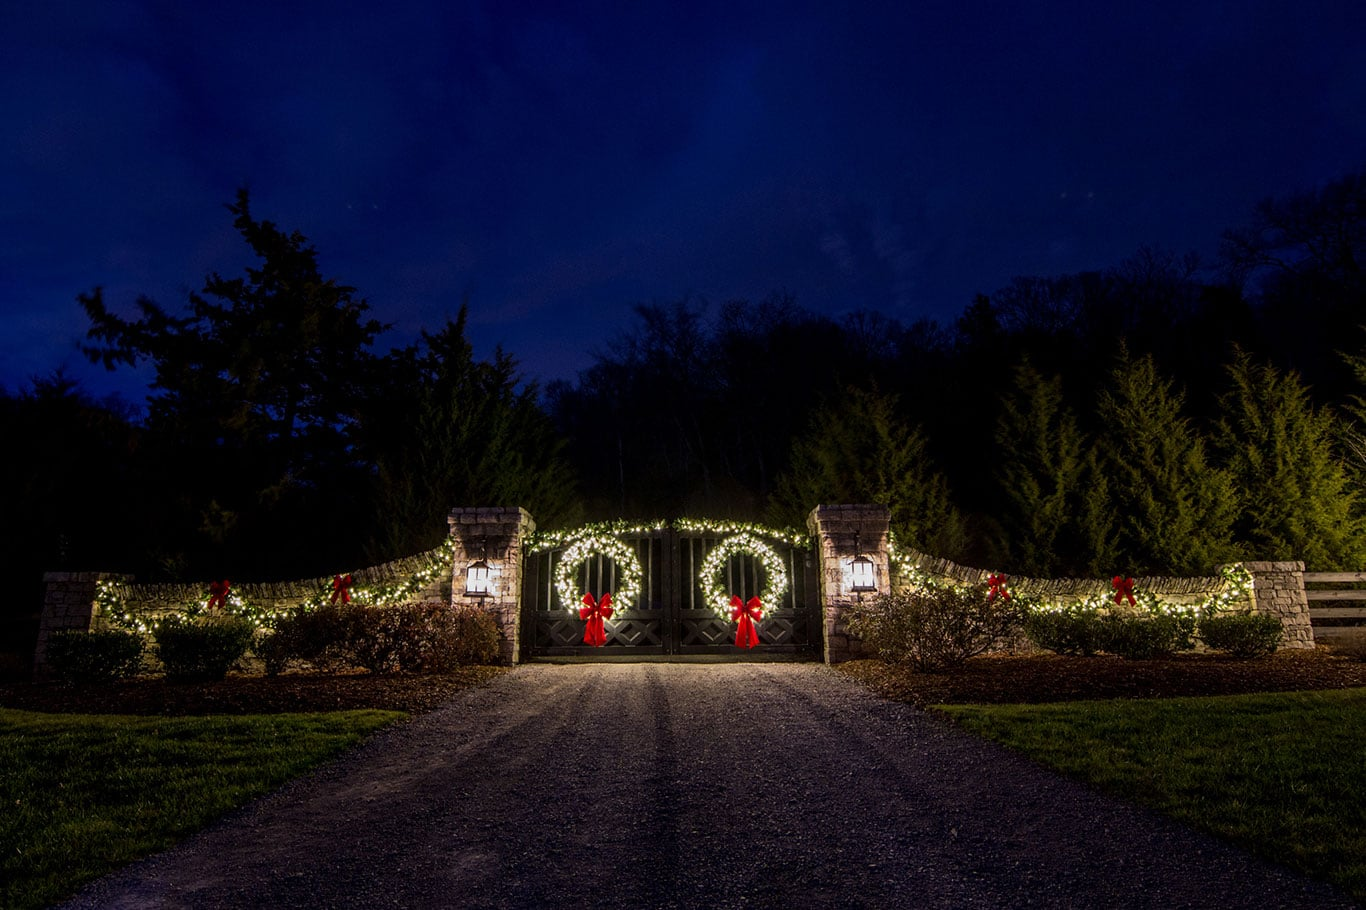 2017 Christmas Display Neighborhood Entrance